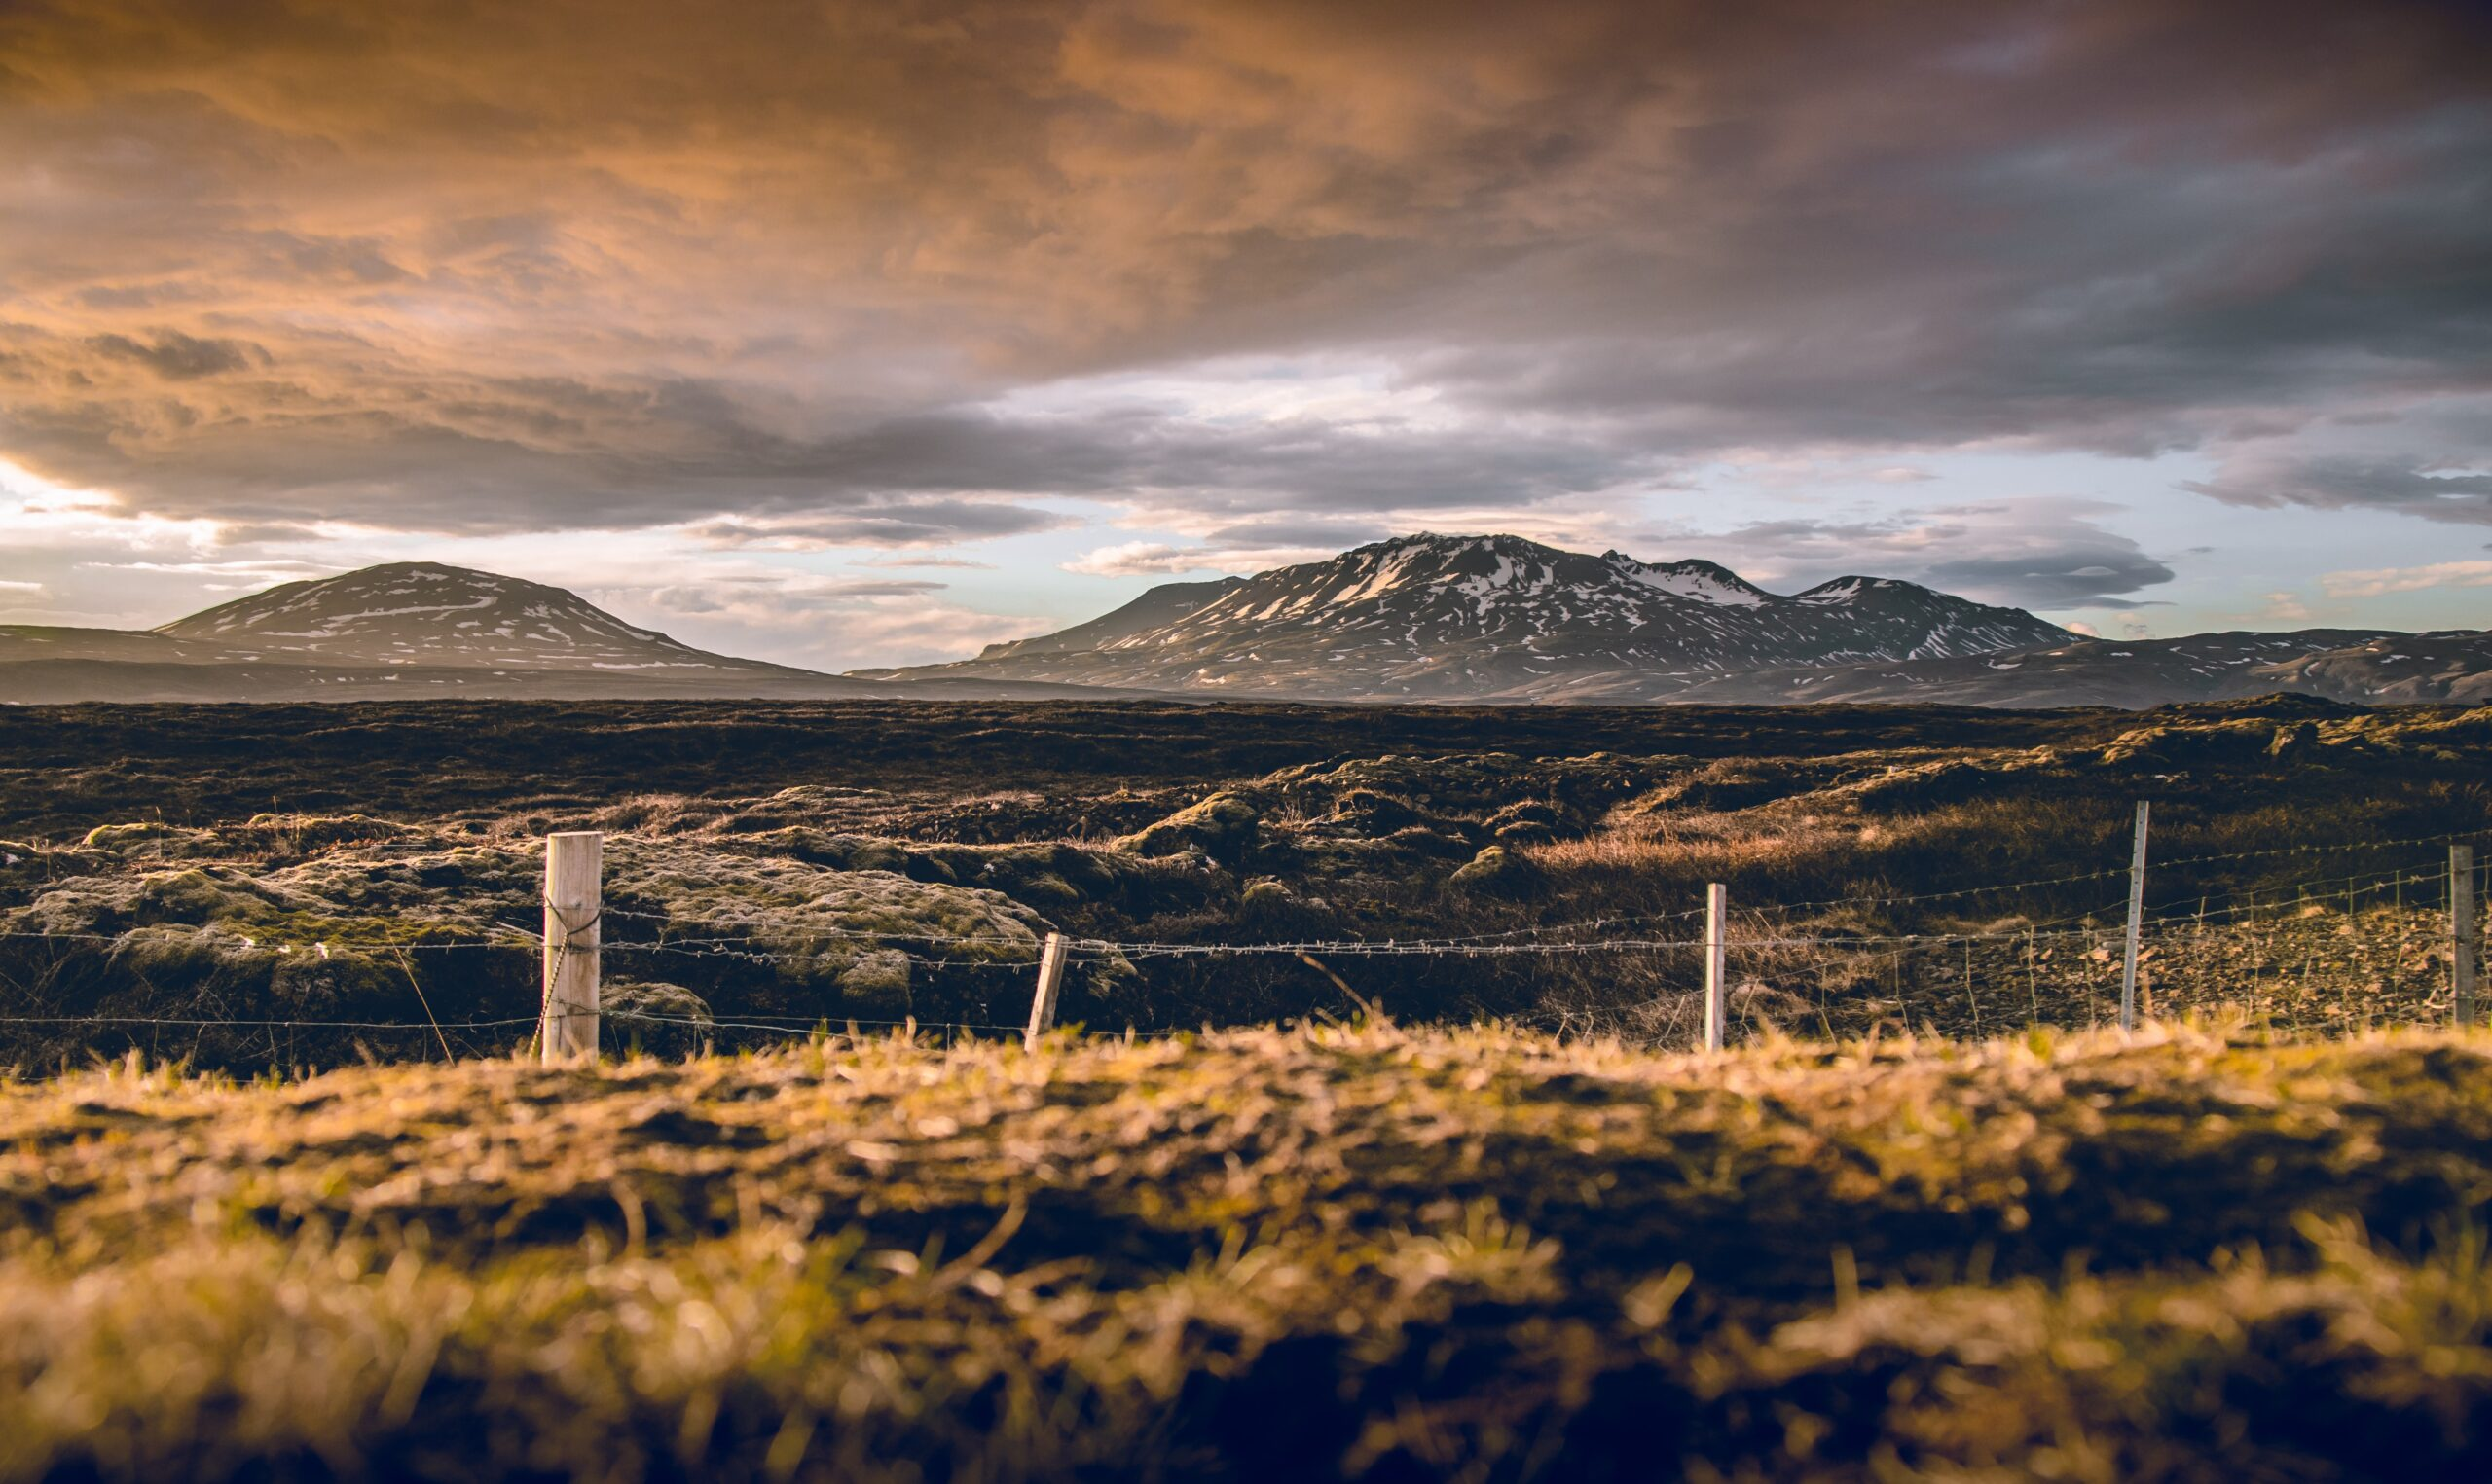 Stunning Iceland Landscapes On Our 5 Day Golden Circle, Jökulsárlón & Blue Lagoon Tour Package